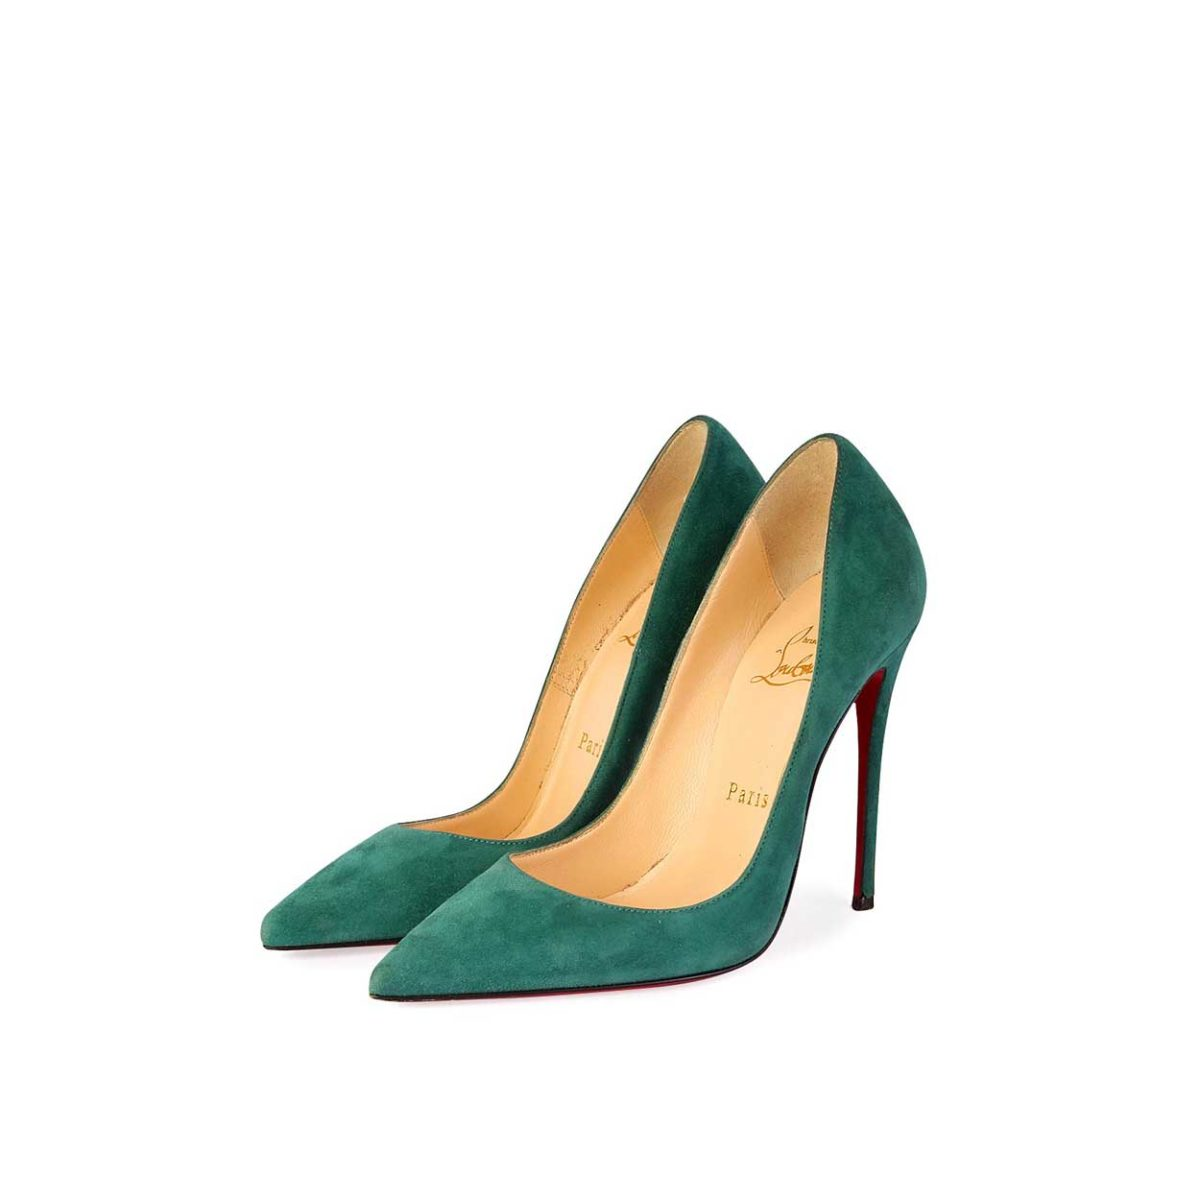 c793368f13b CHRISTIAN LOUBOUTIN Suede So Kate 120 Pumps Green - S  35.5 (3)